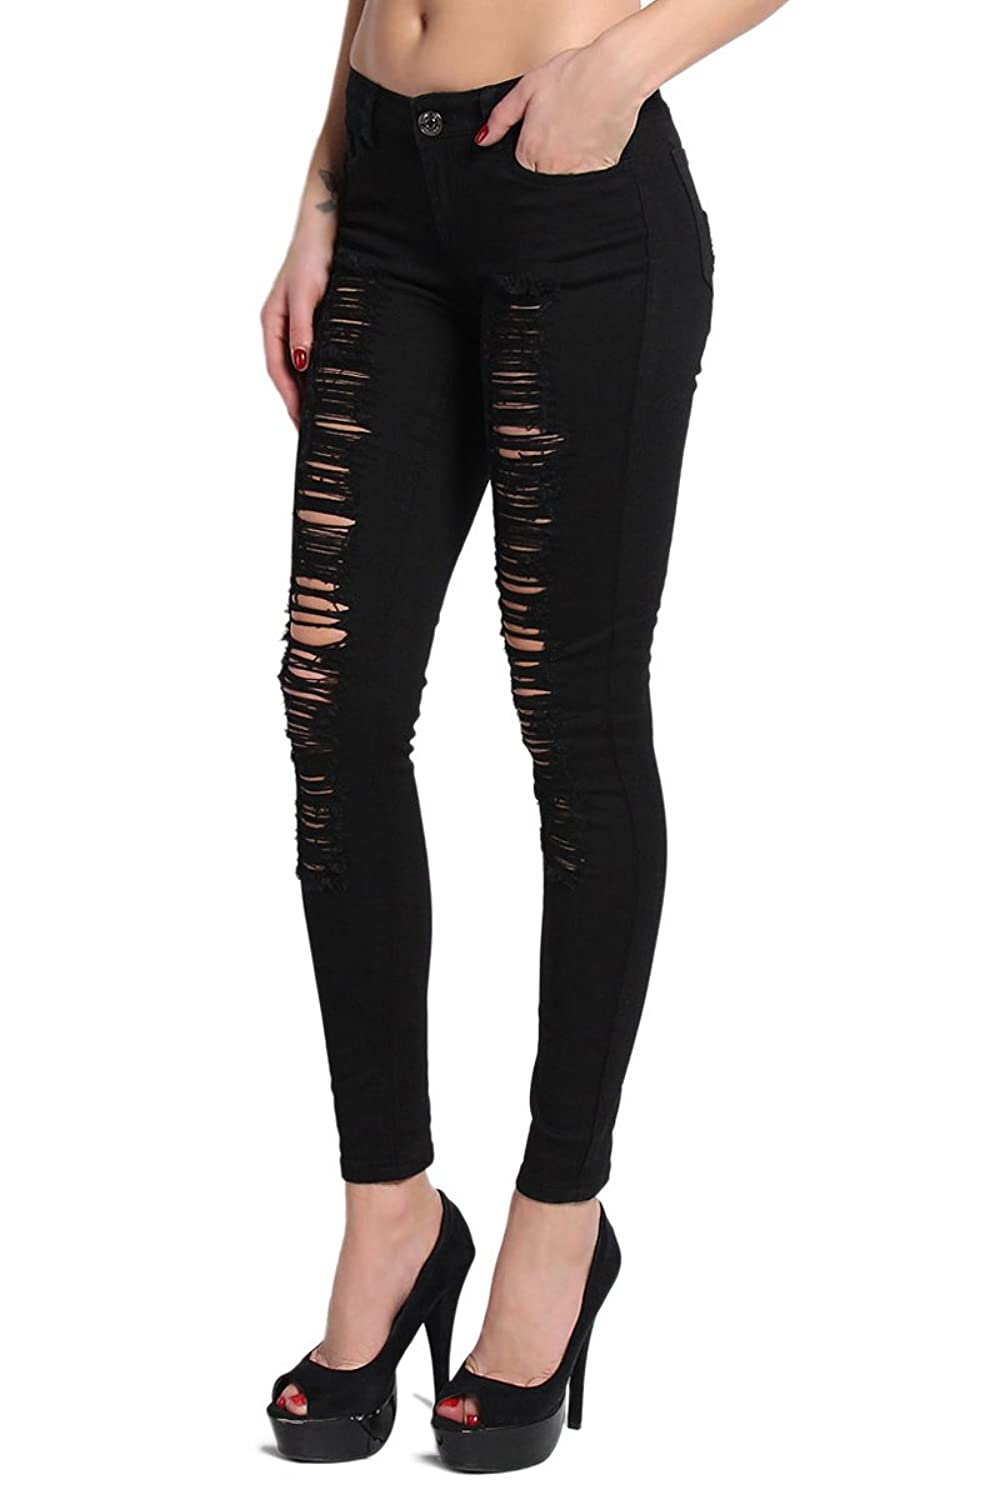 J&C BLACK & WHITE Distressed Rip Destroy Stretch Denim JEANS ...